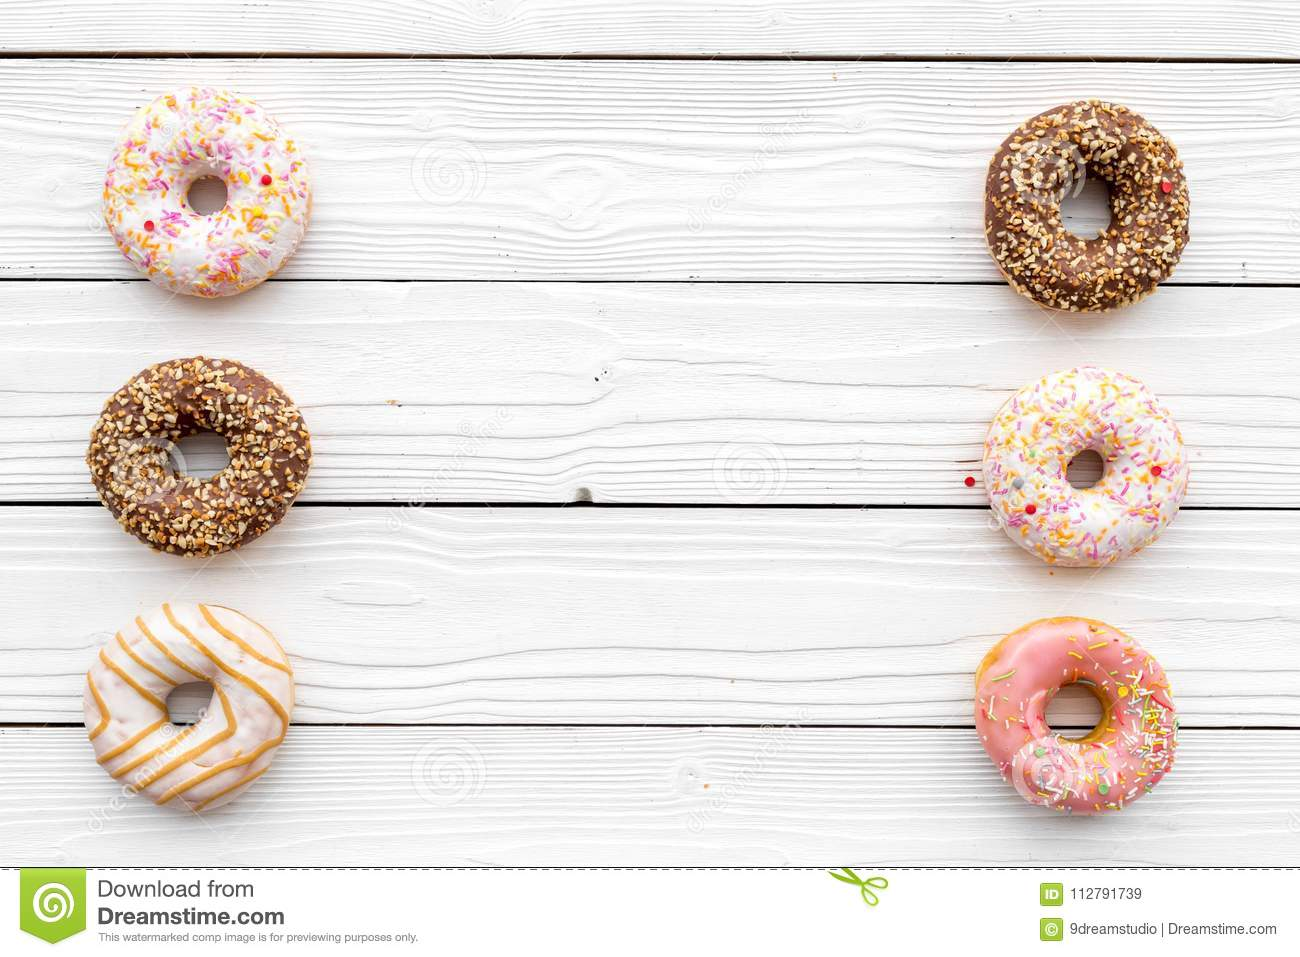 Sweet tasty snack. Glazed donut on white wooden background top view copy space